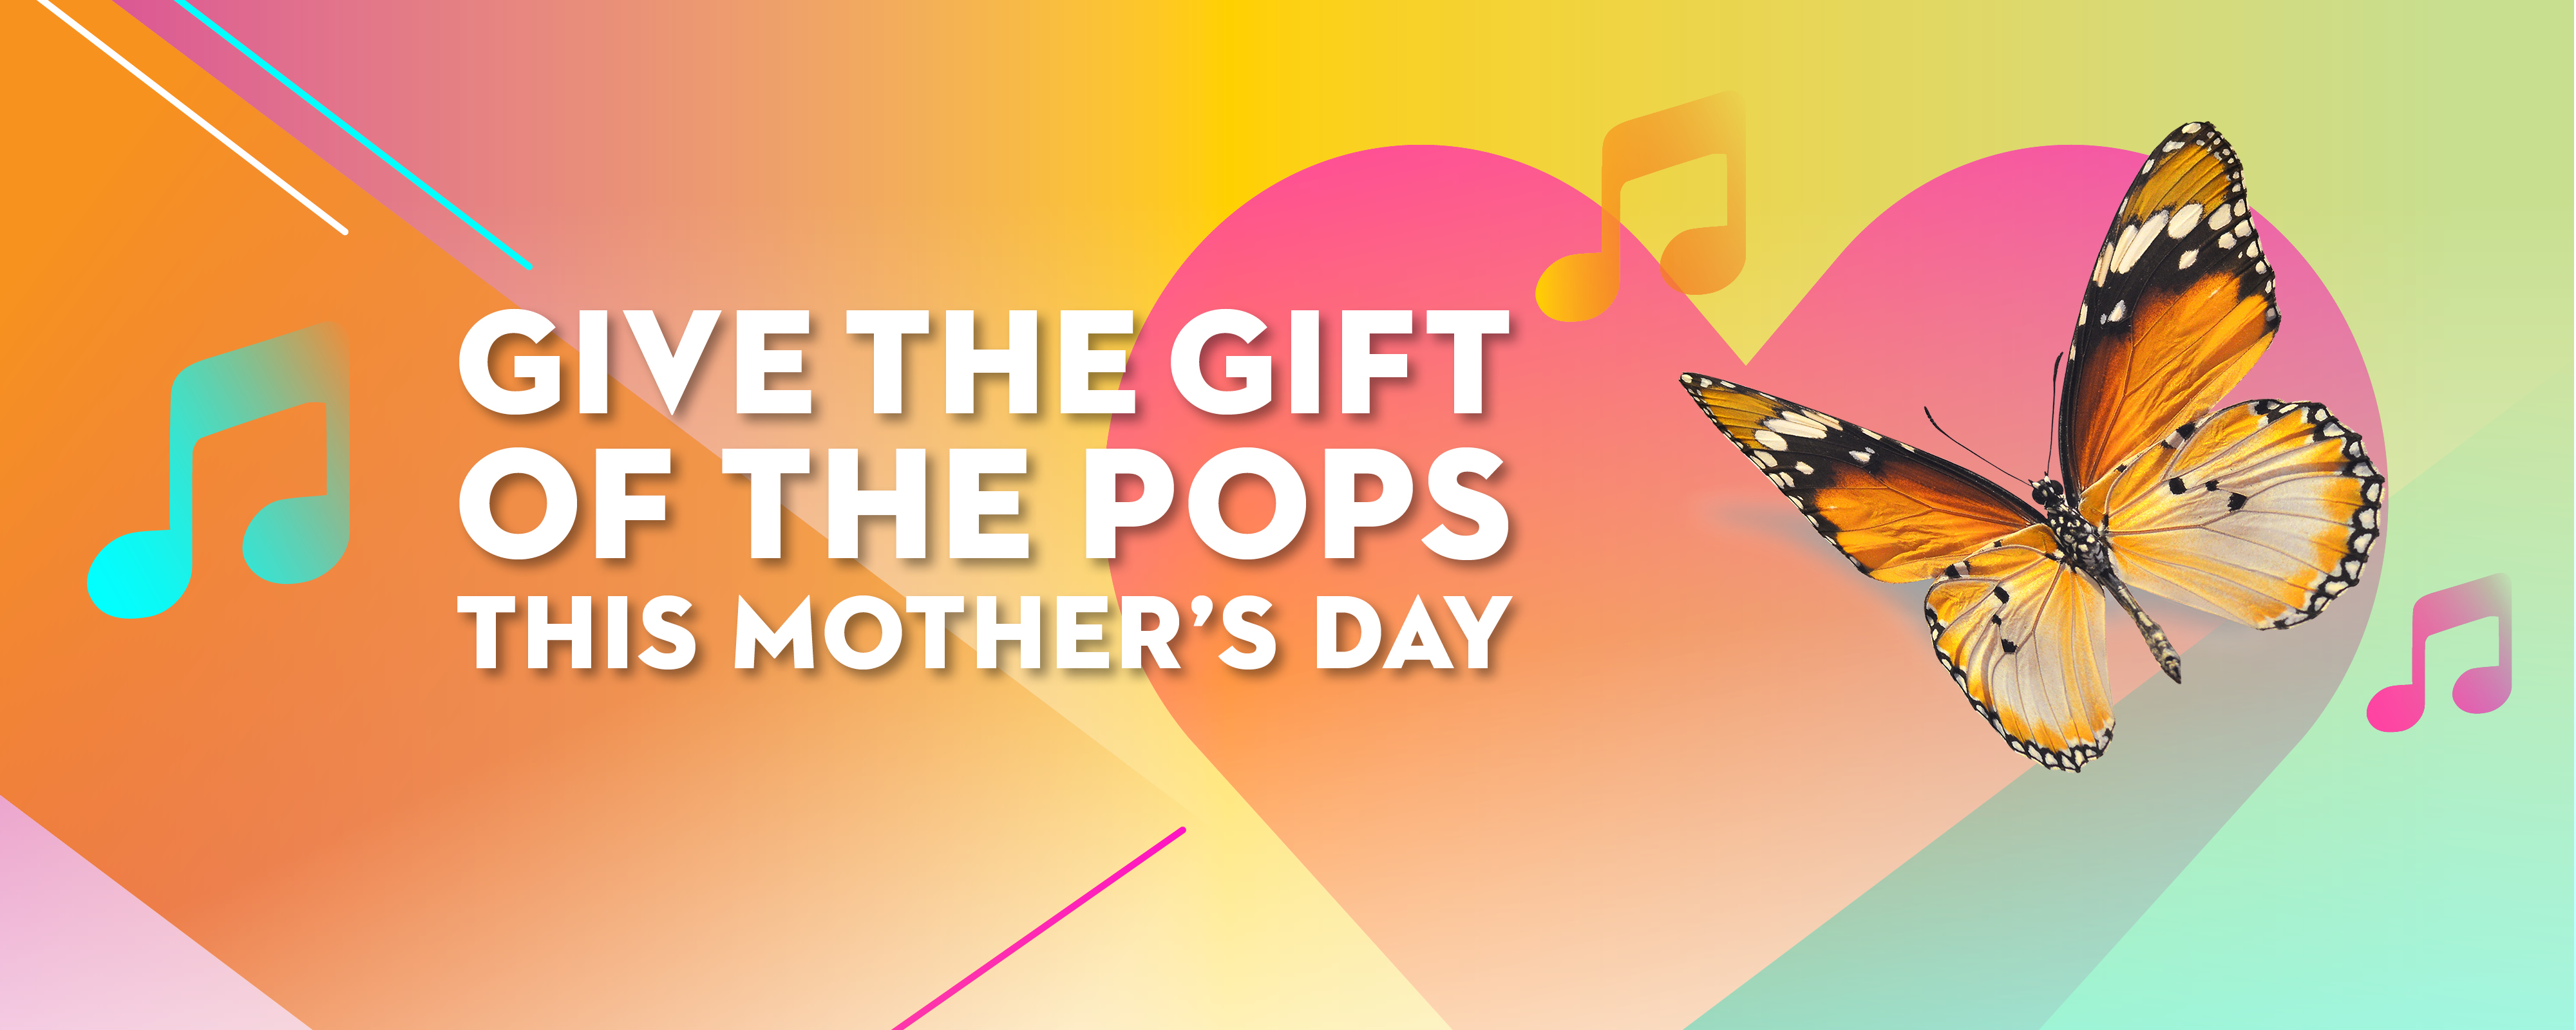 Give the gift of The POPS this Mother's Day!